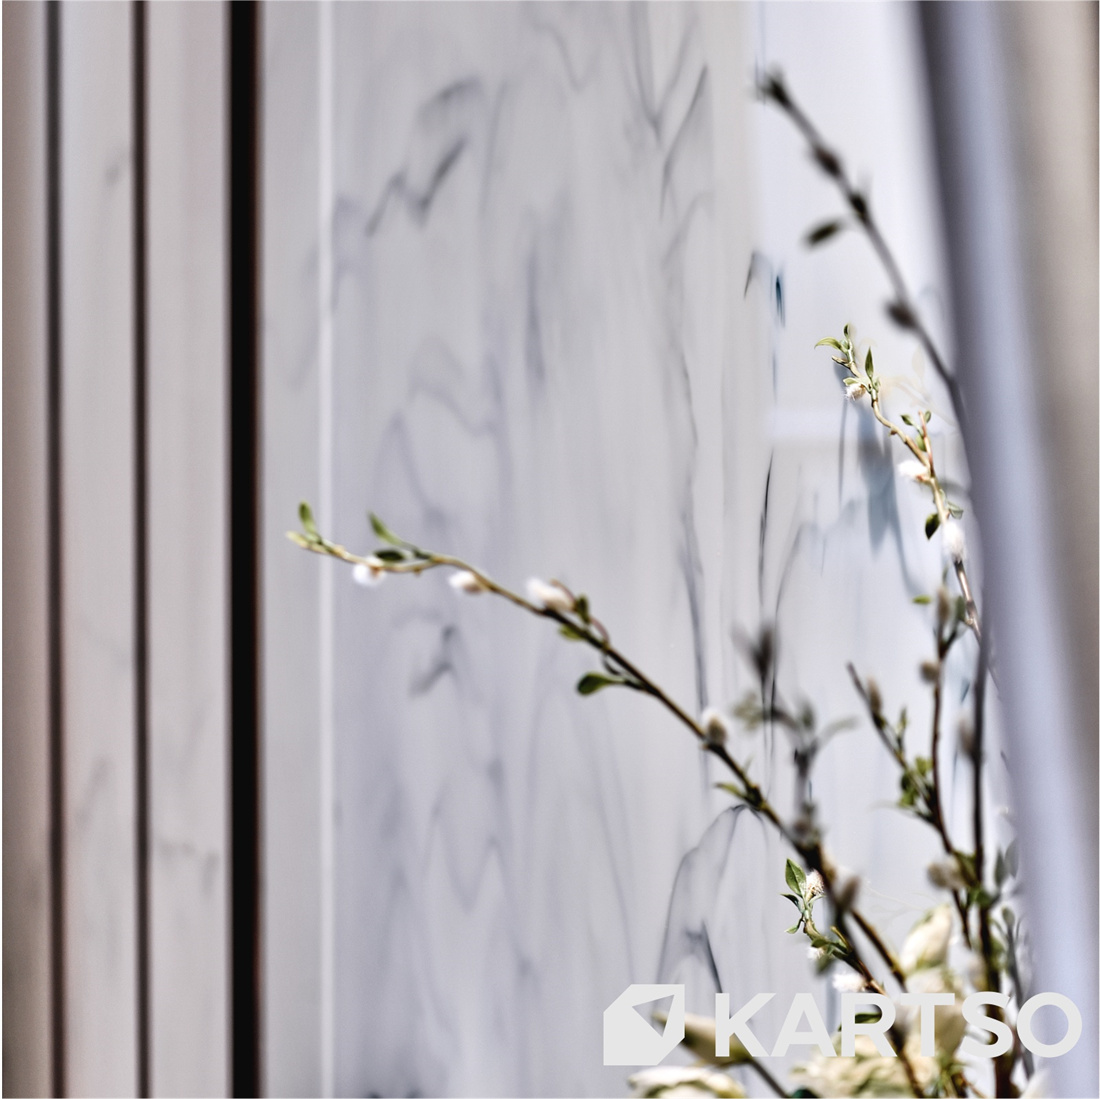 calacatta Artificial Glass Stone for Wall Decoration and Flooring